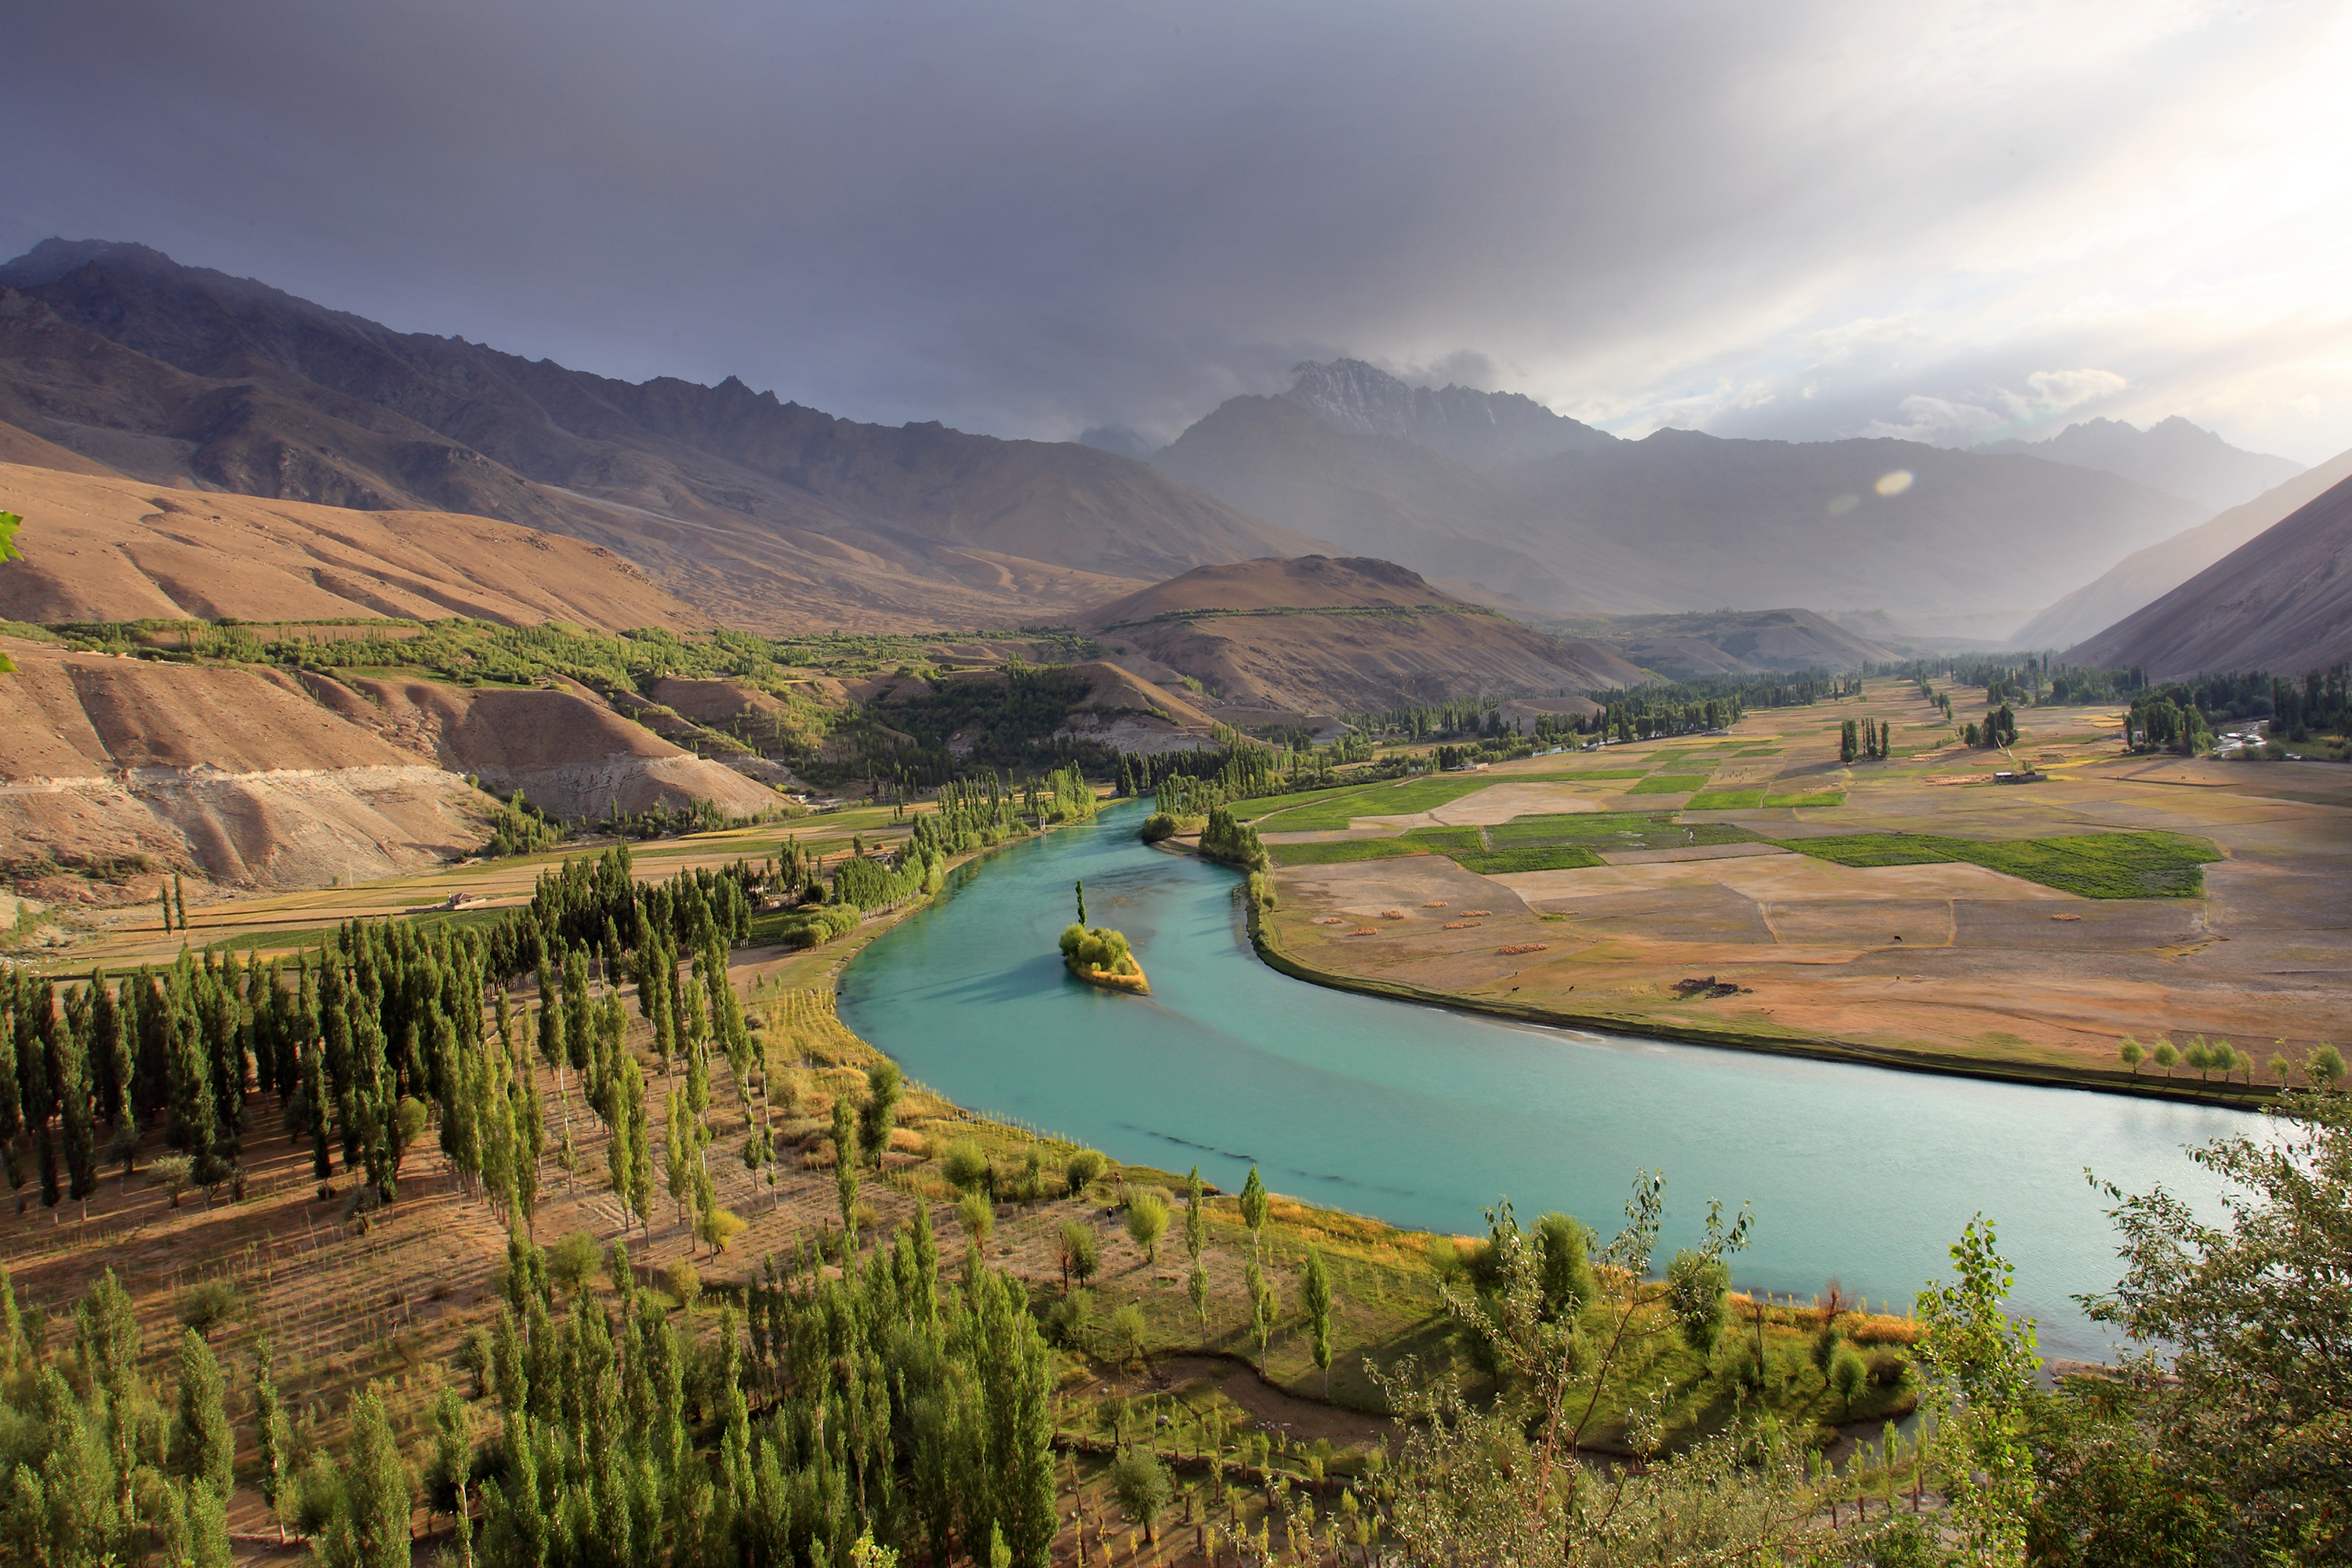 The turquoise Phandar river snakes through the valley